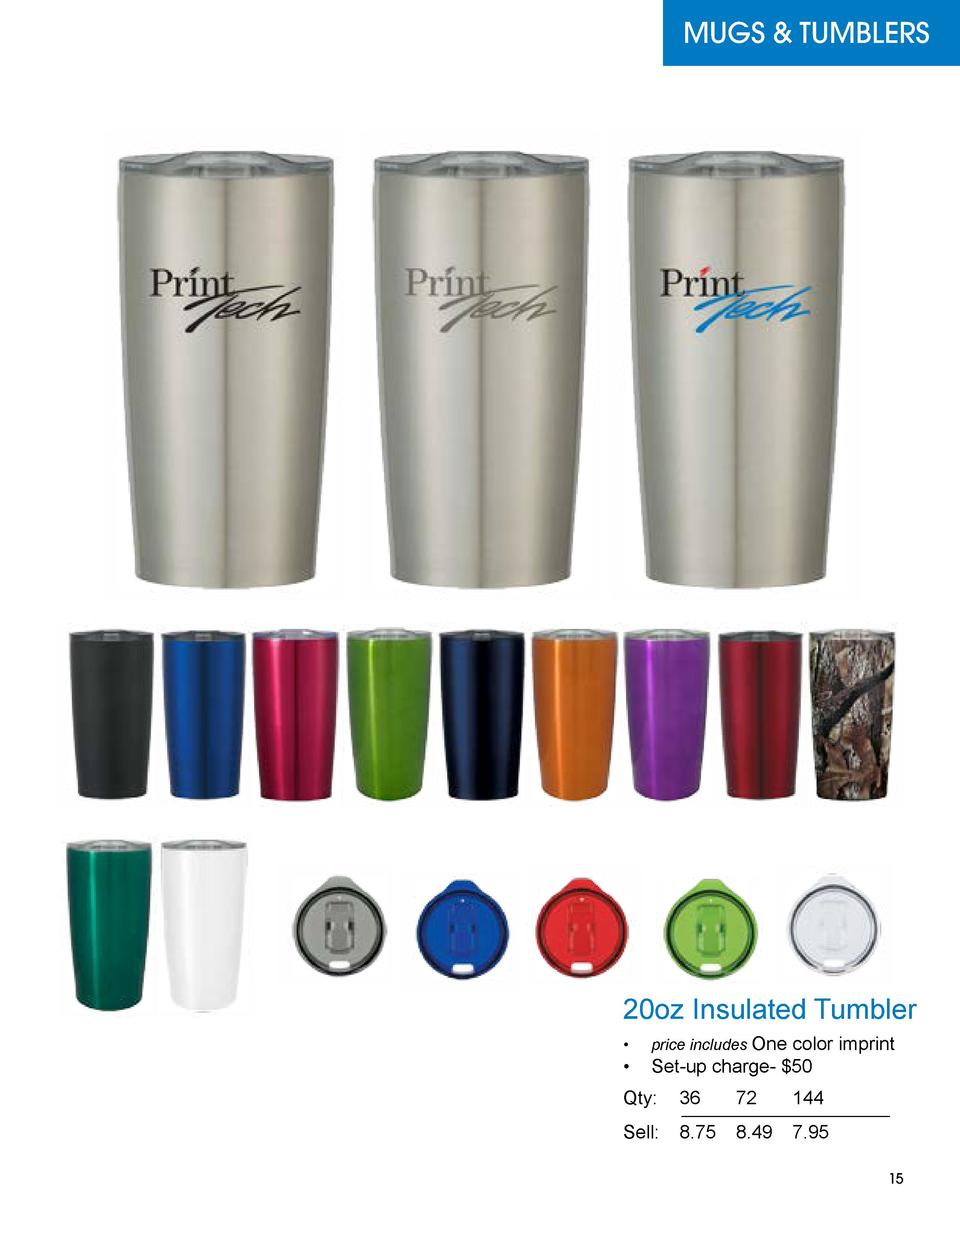 MUGS   TUMBLERS  20oz Insulated Tumbler color imprint      Set-up charge-  50       price includes One  Qty   36 72 144 Se...